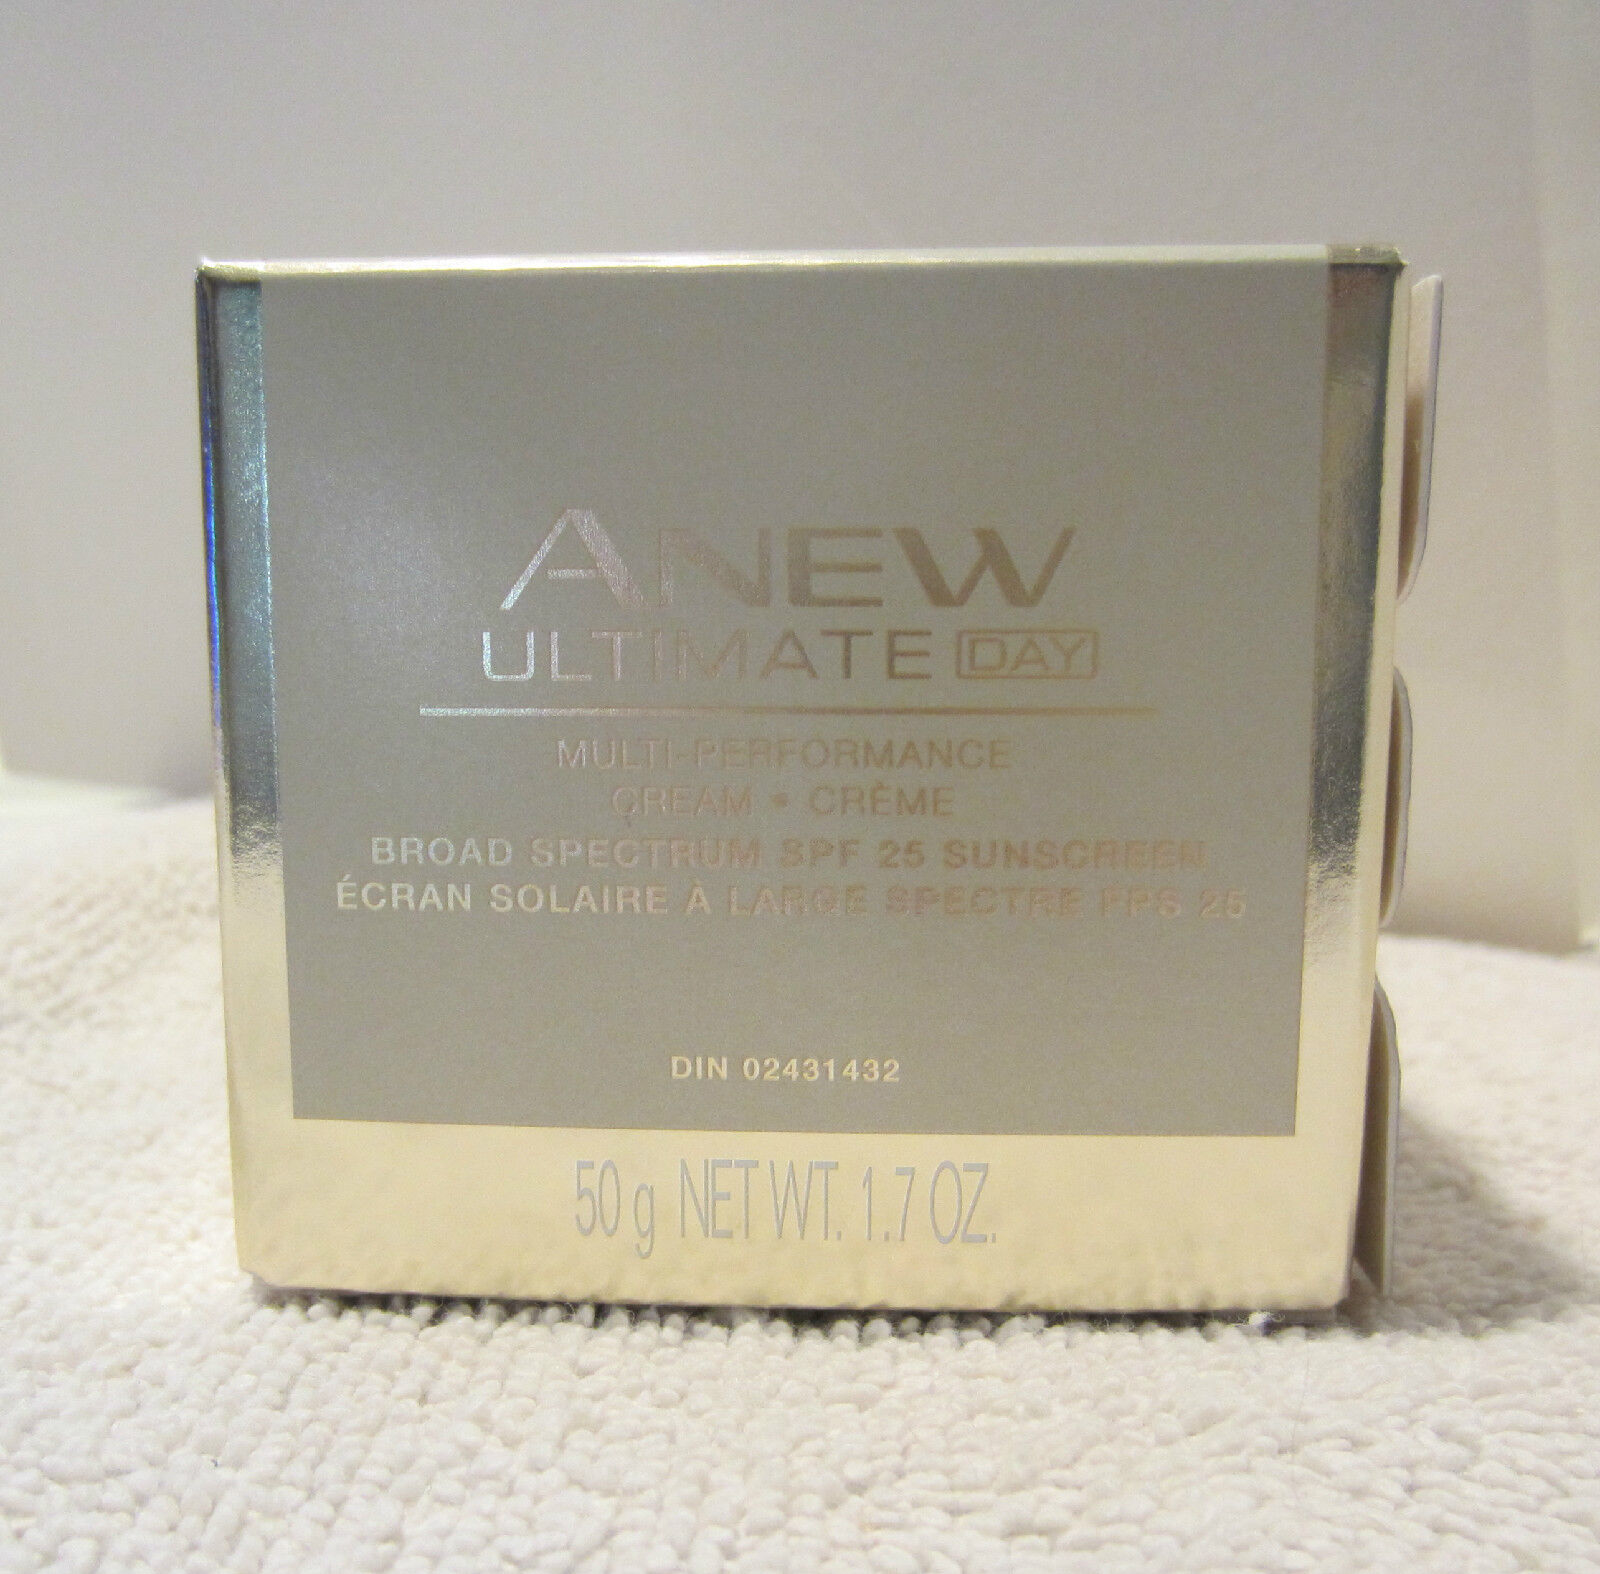 AVON ANEW ULTIMATE DAY MULTI PERFORMANCE CREAM WITH SPF-25  - $11.00